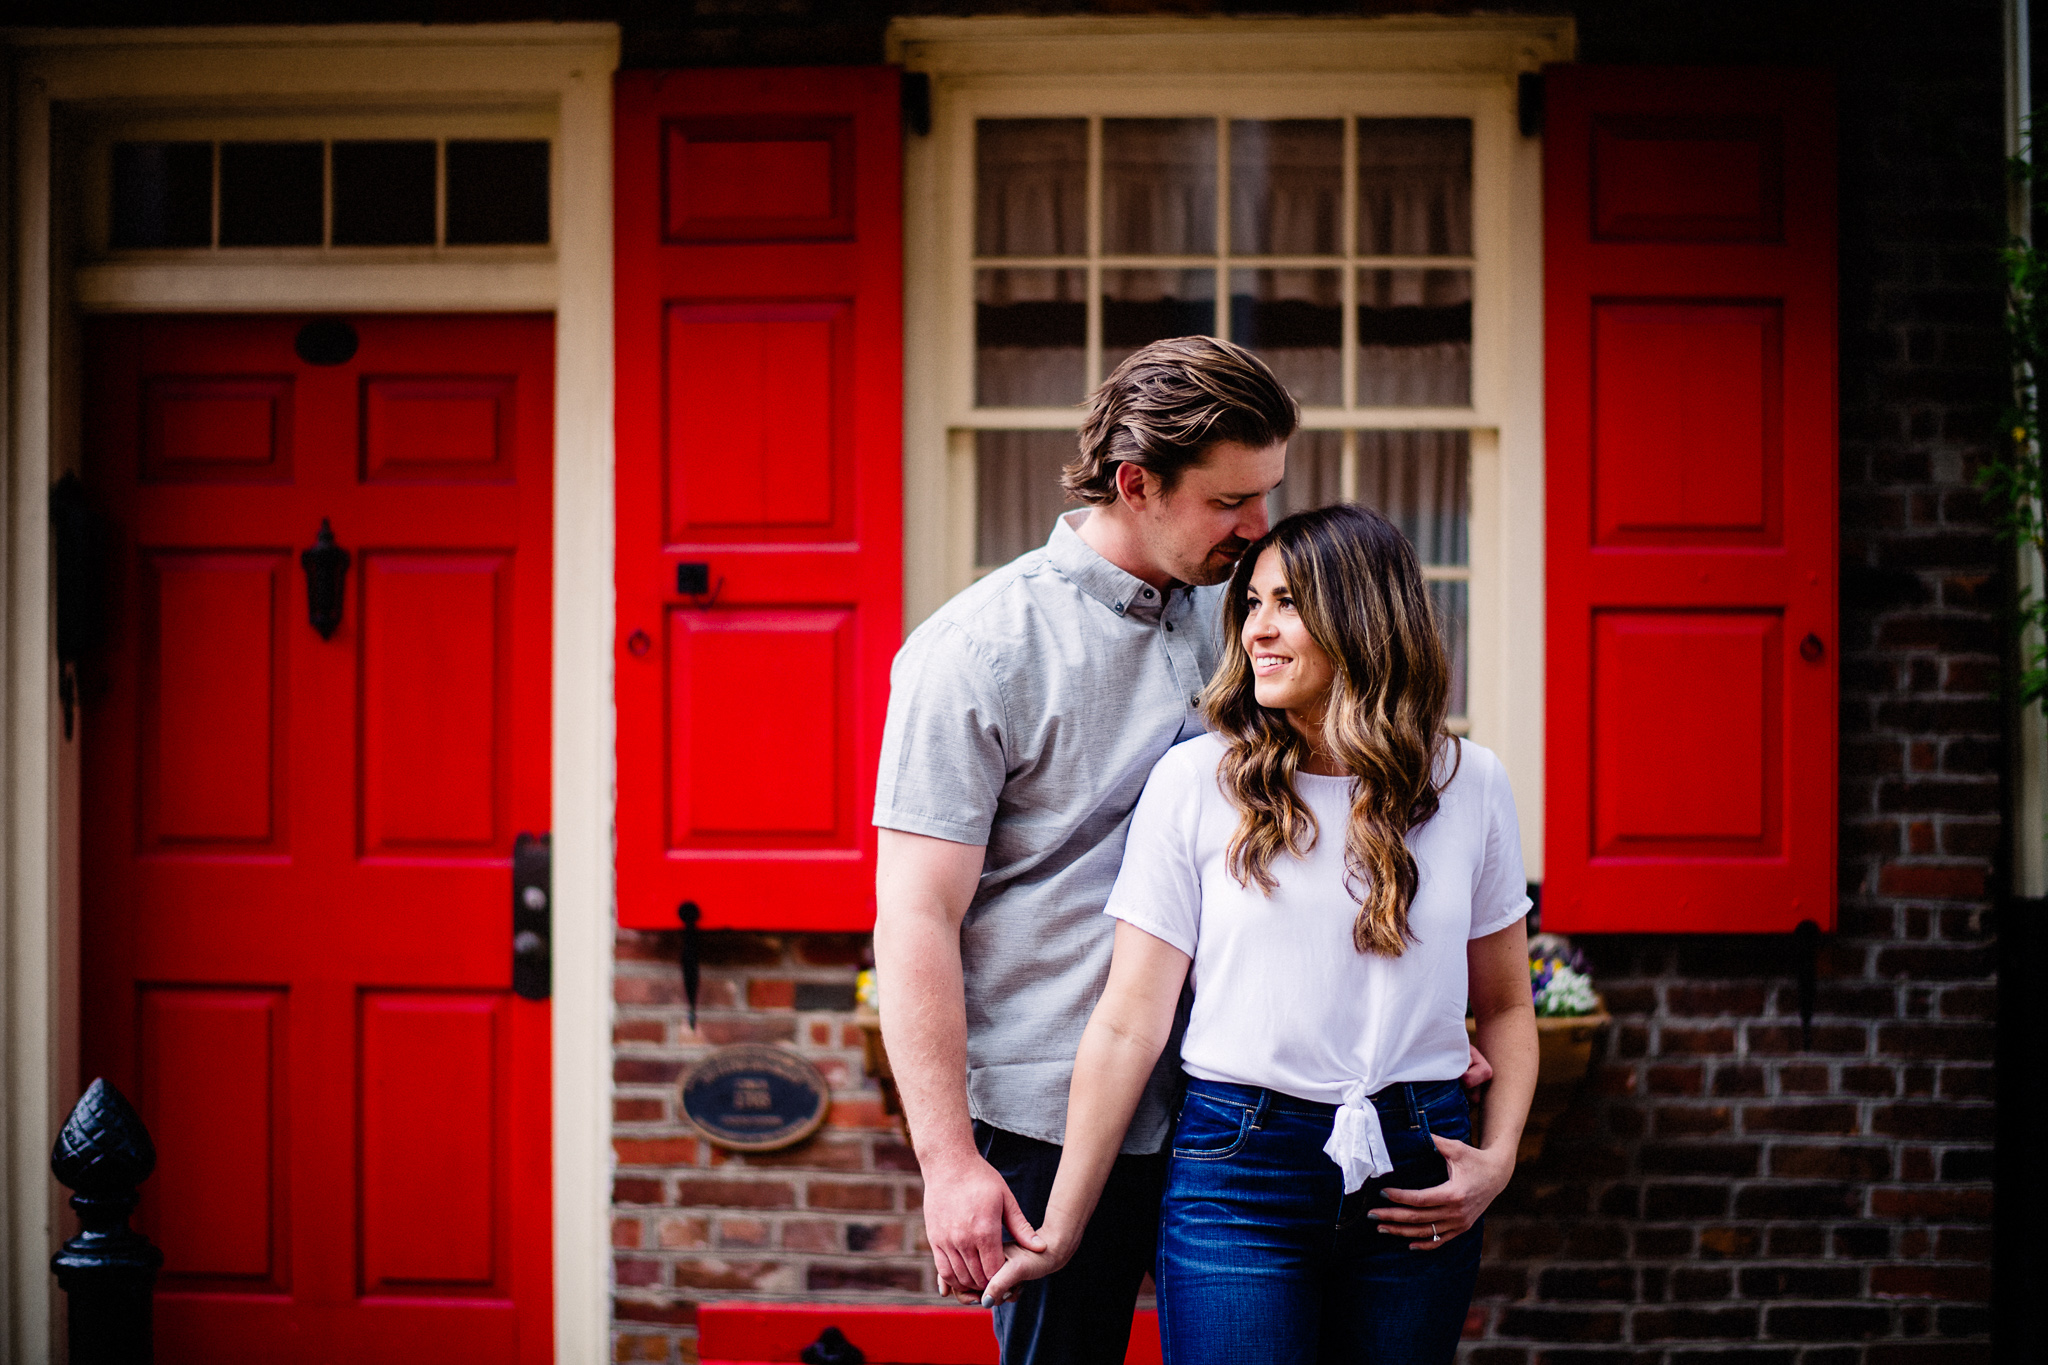 Philadelphia Old City Broad Street Engagement Photography-2019 -04-22-17-54-852_7547-Edit.jpg